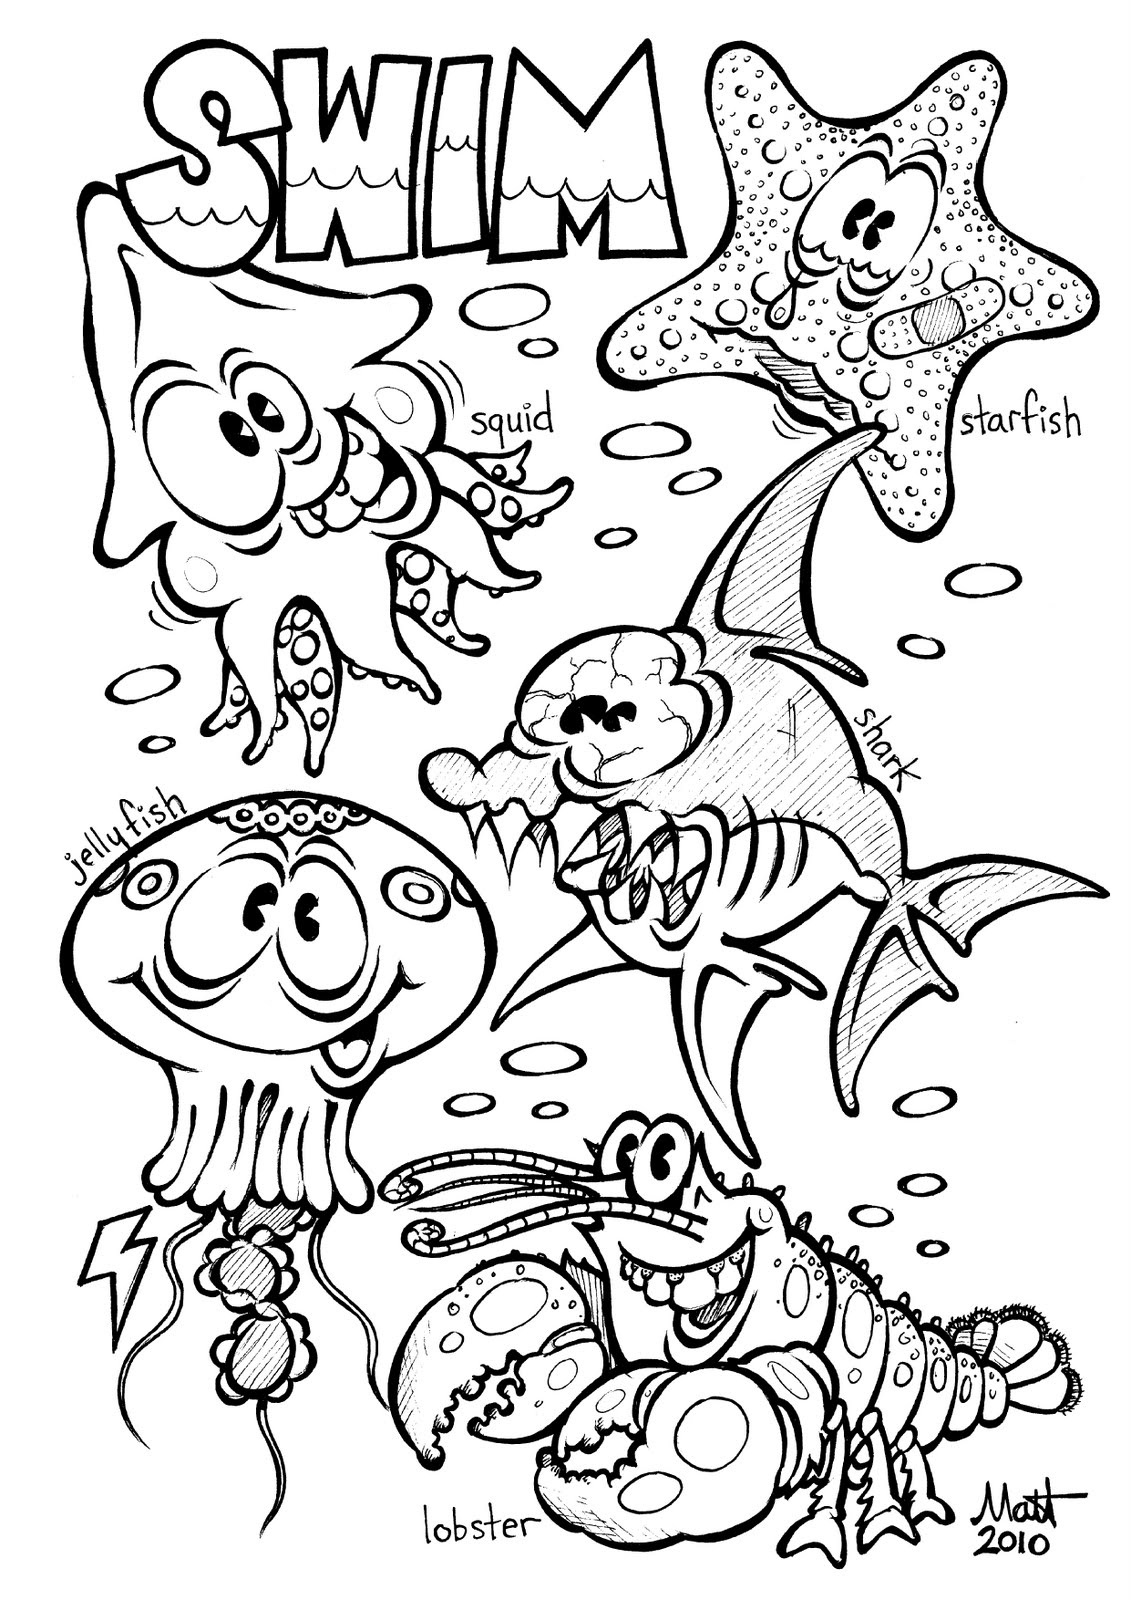 ocean animal coloring pages - Ocean Animals Coloring Pages